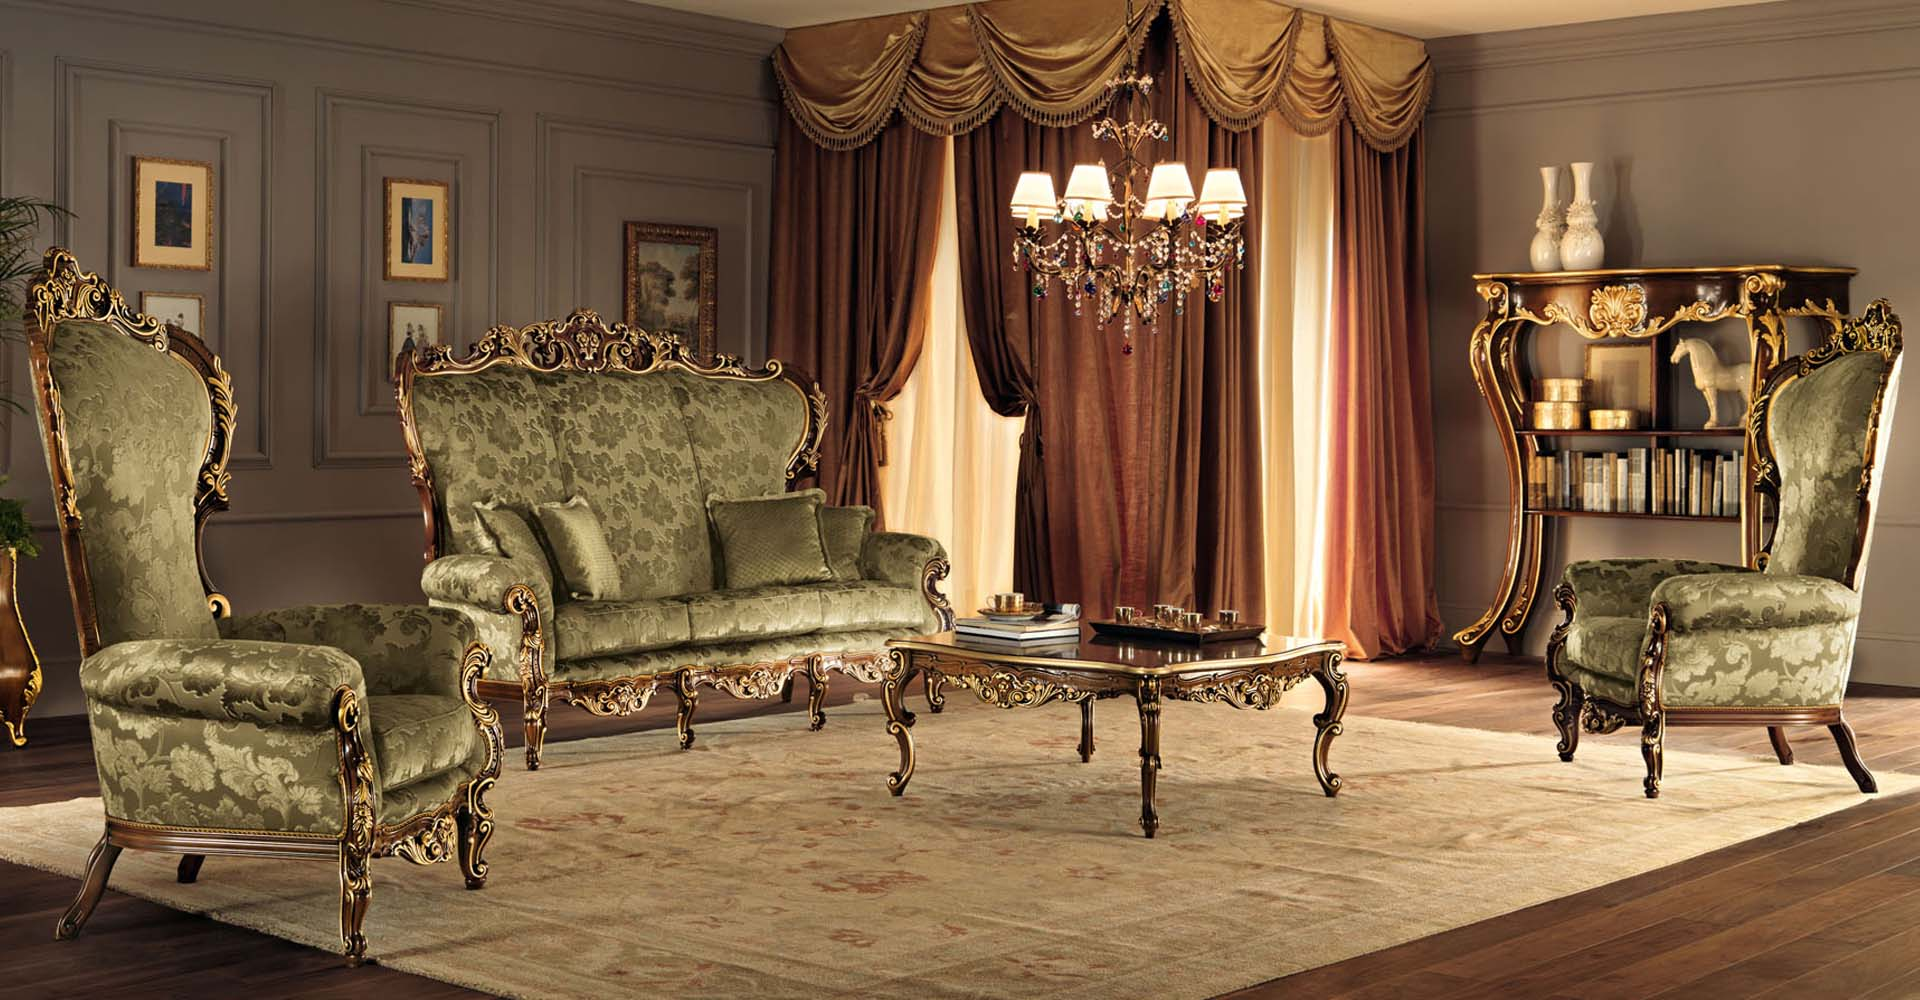 living room inspiration with classic style